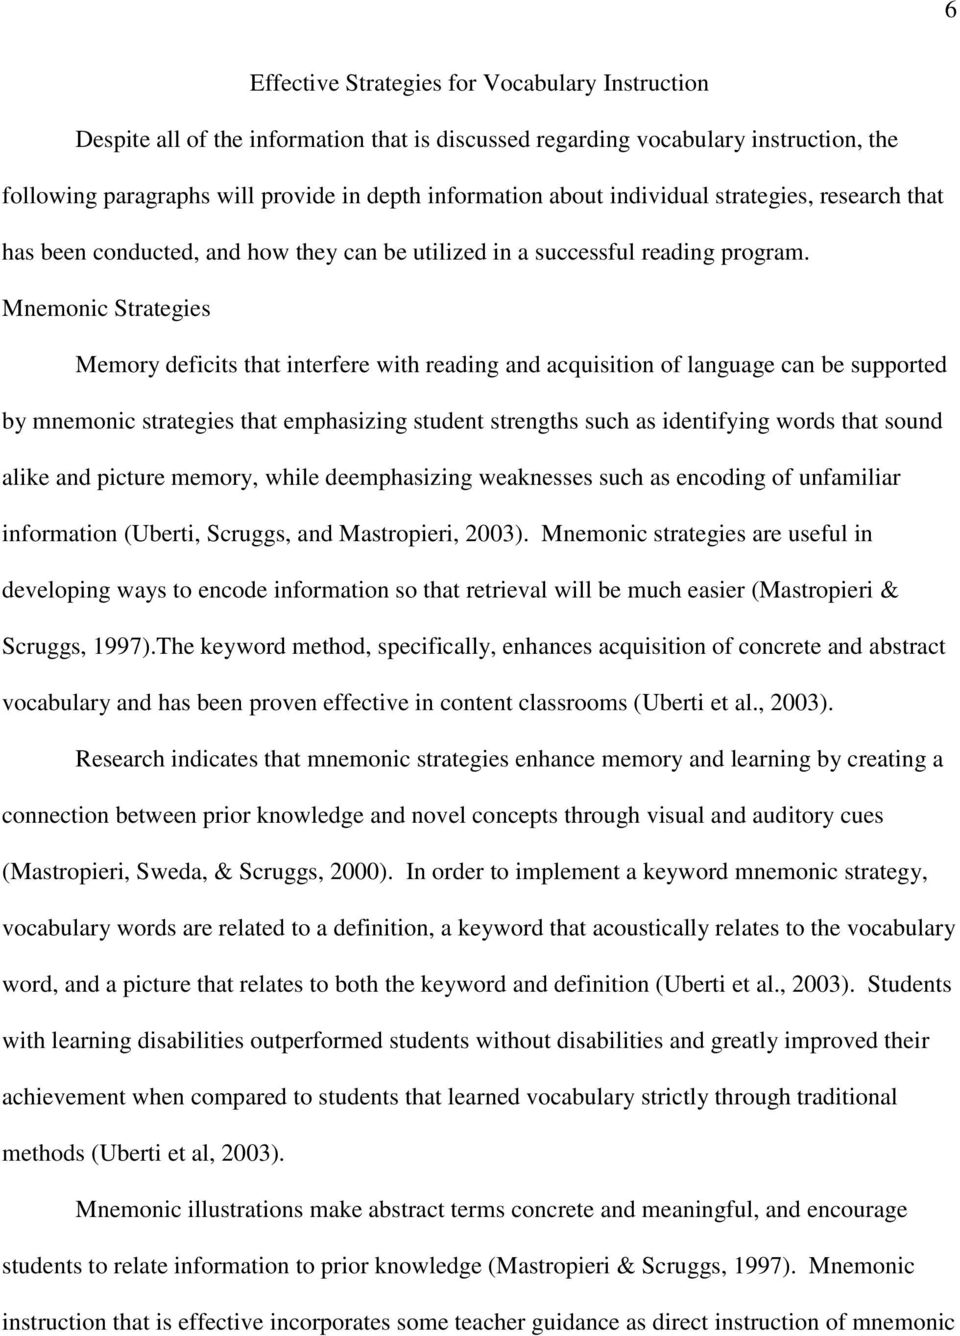 Mnemonic Strategies Memory deficits that interfere with reading and acquisition of language can be supported by mnemonic strategies that emphasizing student strengths such as identifying words that